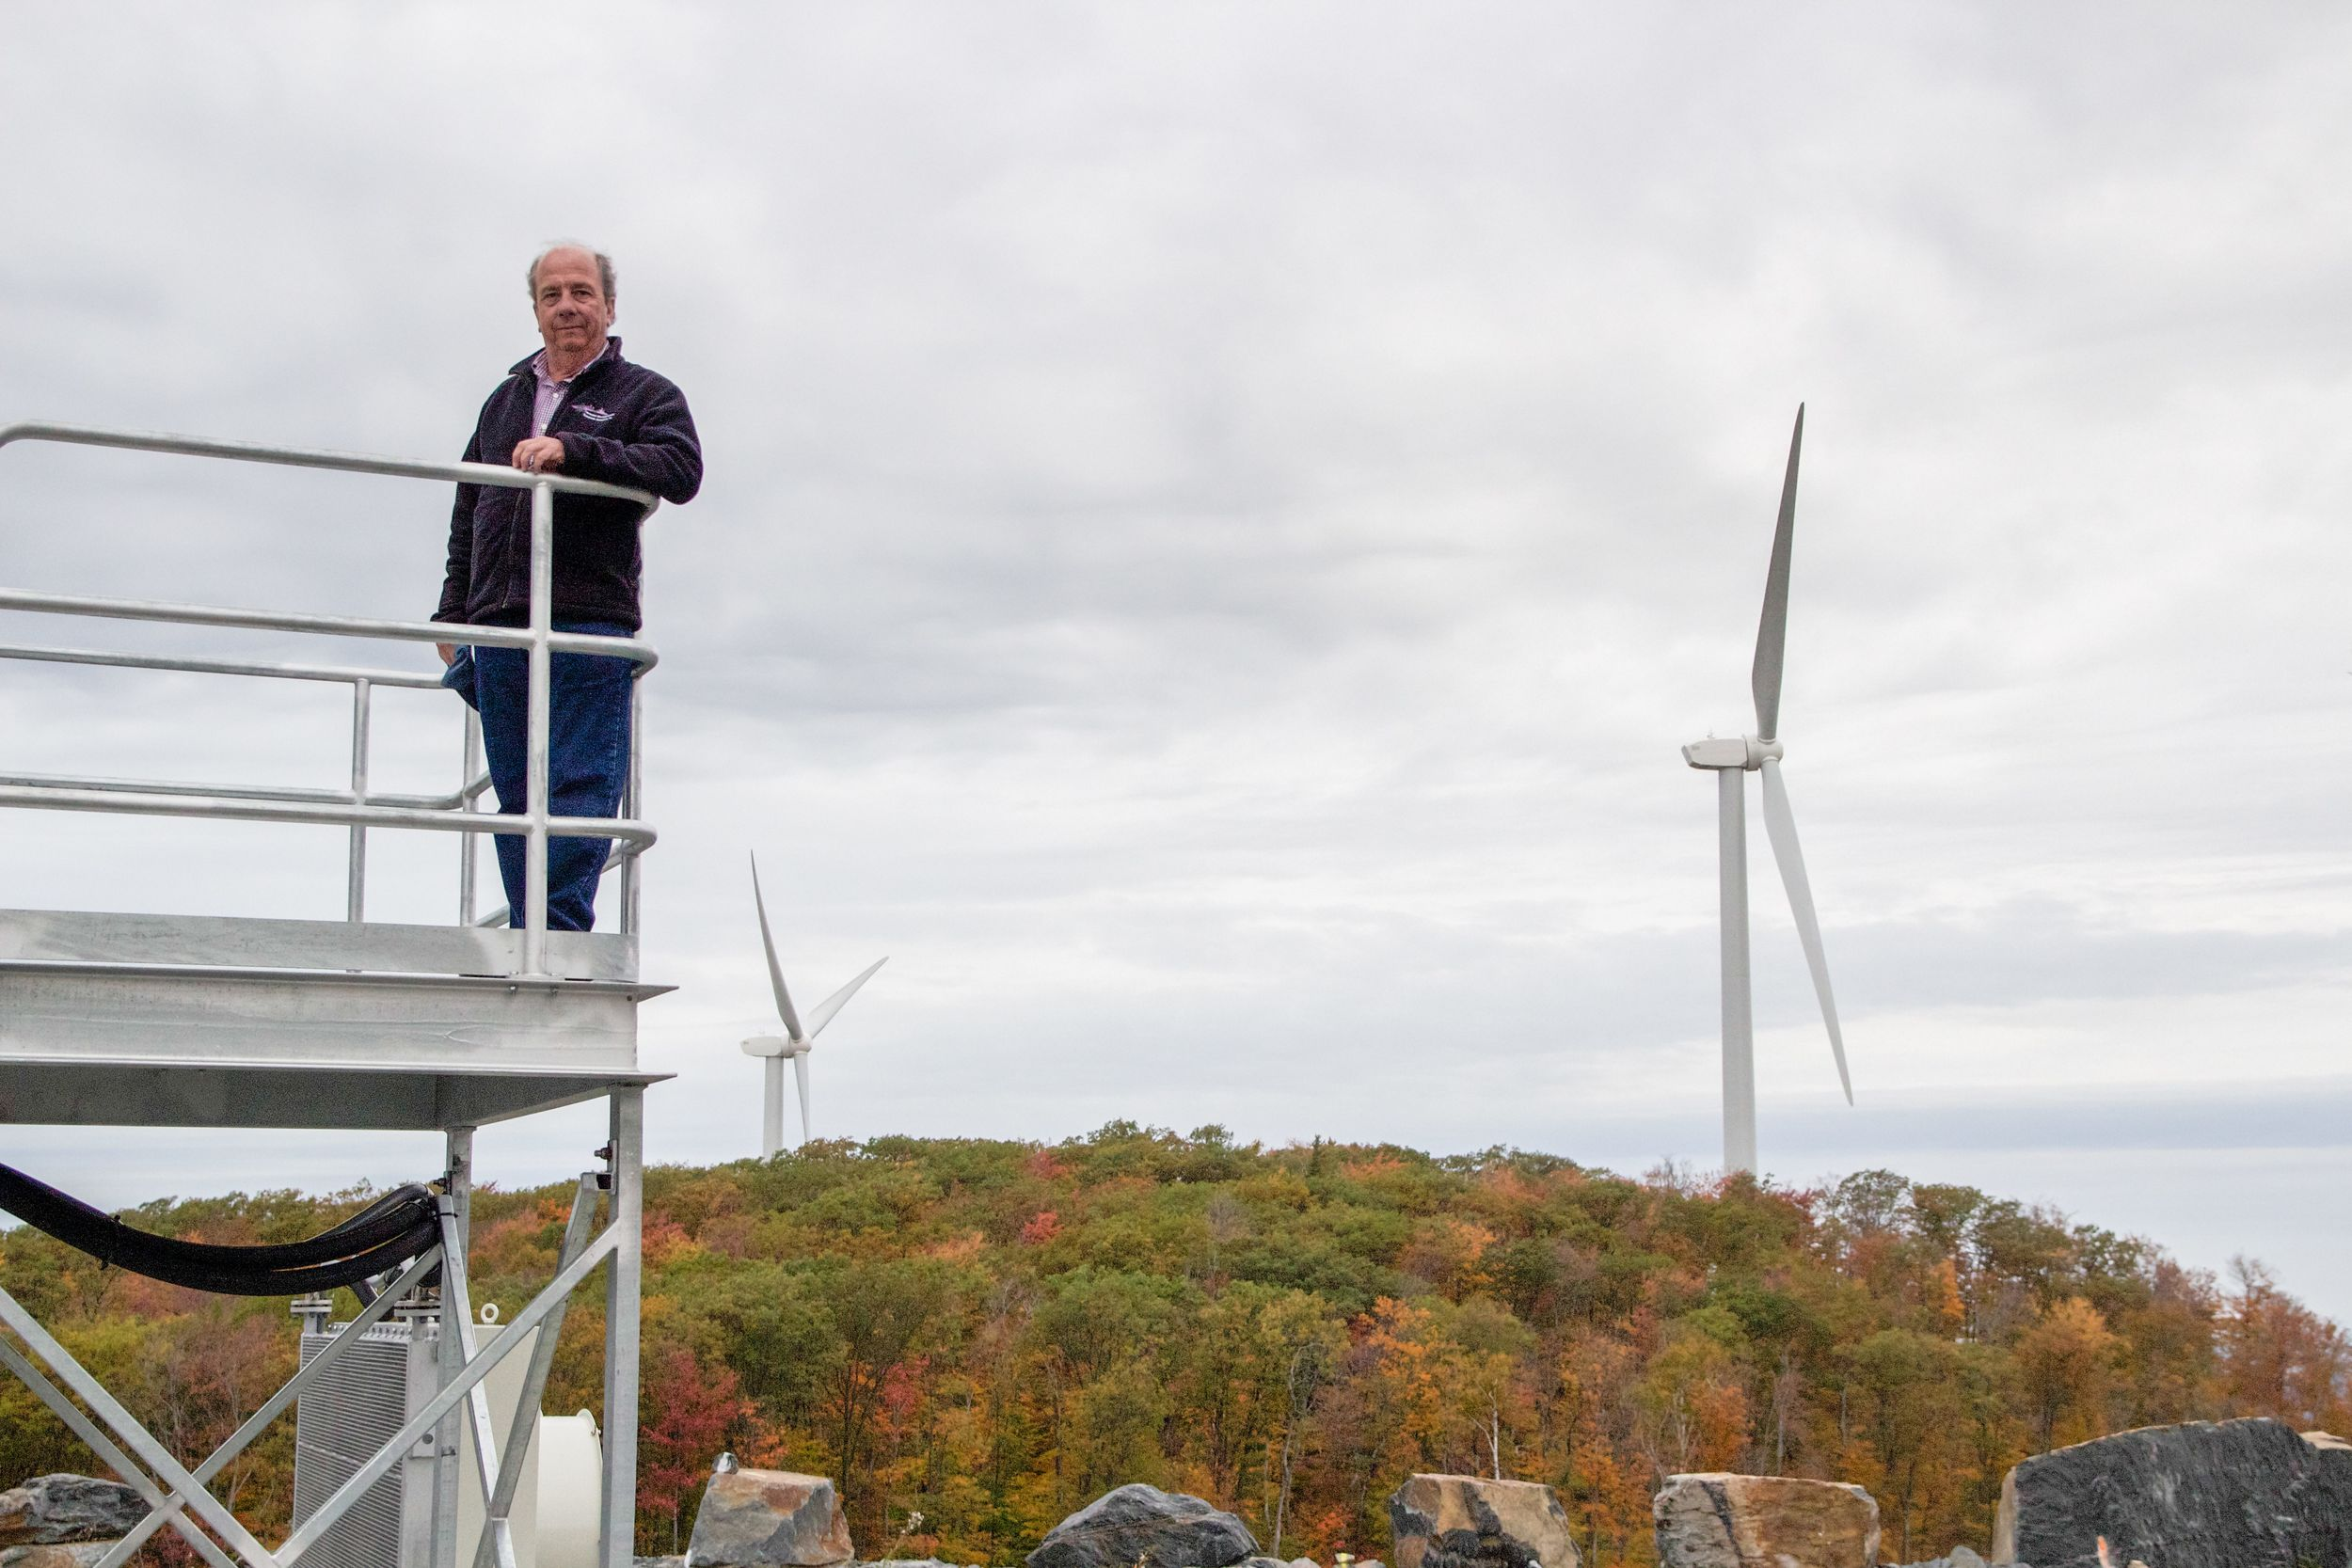 John Zimmerman at the Milton and Georgia Vermont wind farm—a 10 megawatt, four turbine, generation project that was placed in service in December of 2012 and has since become the highest performing wind farm in Vermont. Photo by Dorothy Weicker.